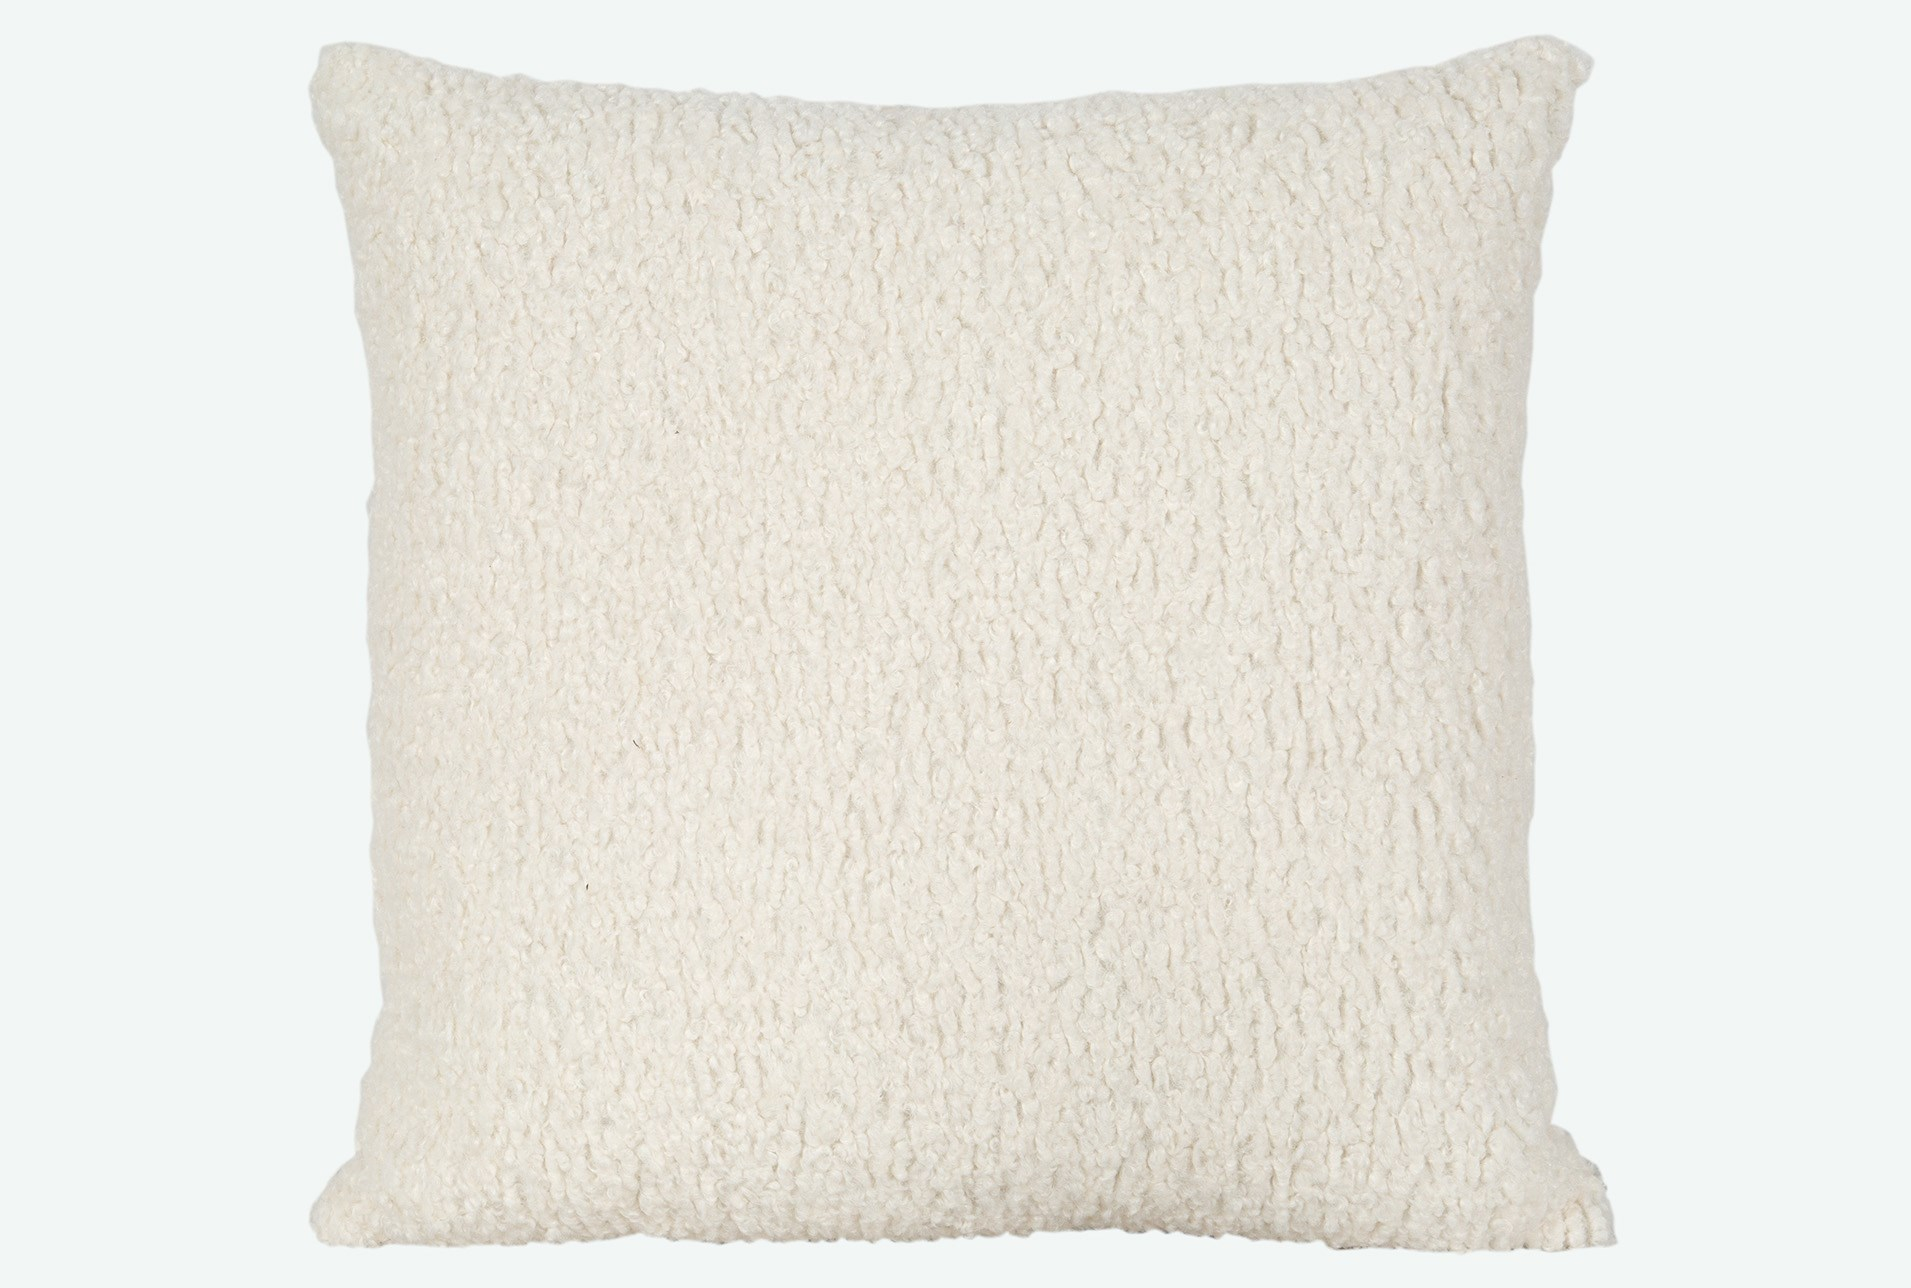 Accent Pillow Sheepskin Natural 22x22 By Nate Berkus And Jeremiah B Qty 1 Has Been Successfully Added To Your Cart